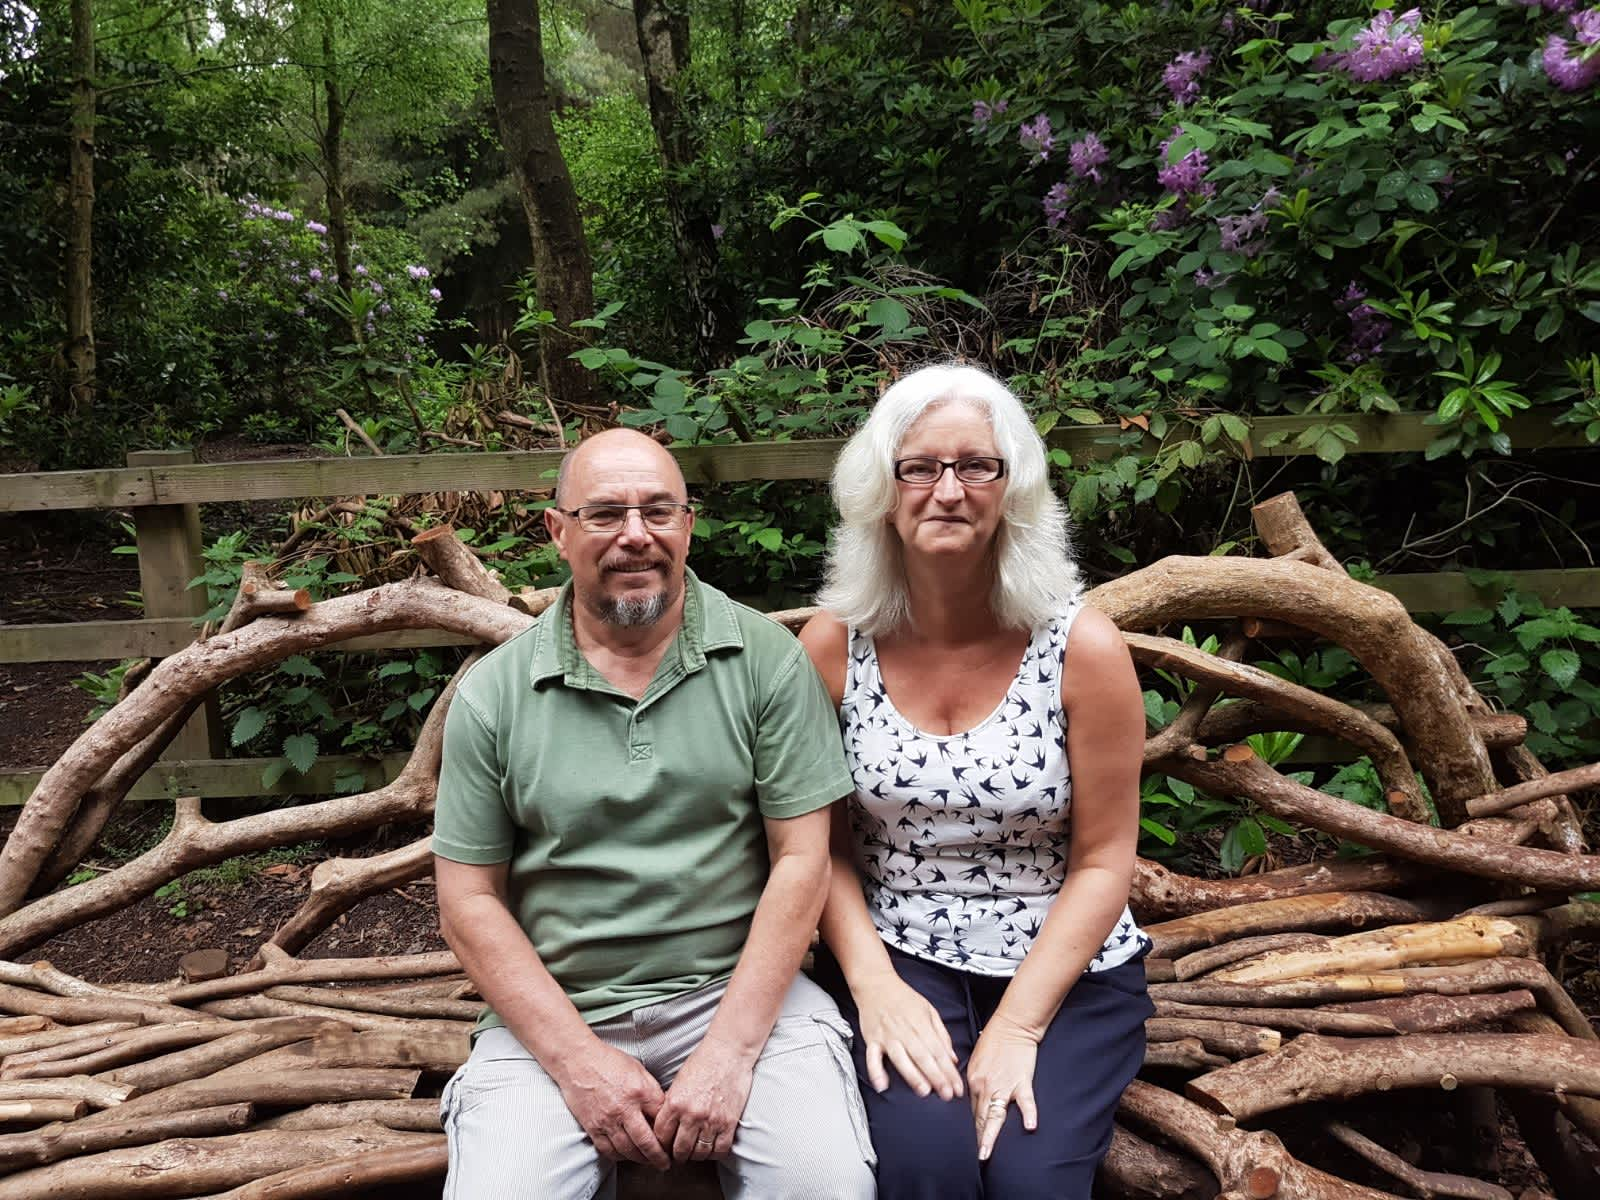 Paul & Cathy from Gaerwen, United Kingdom